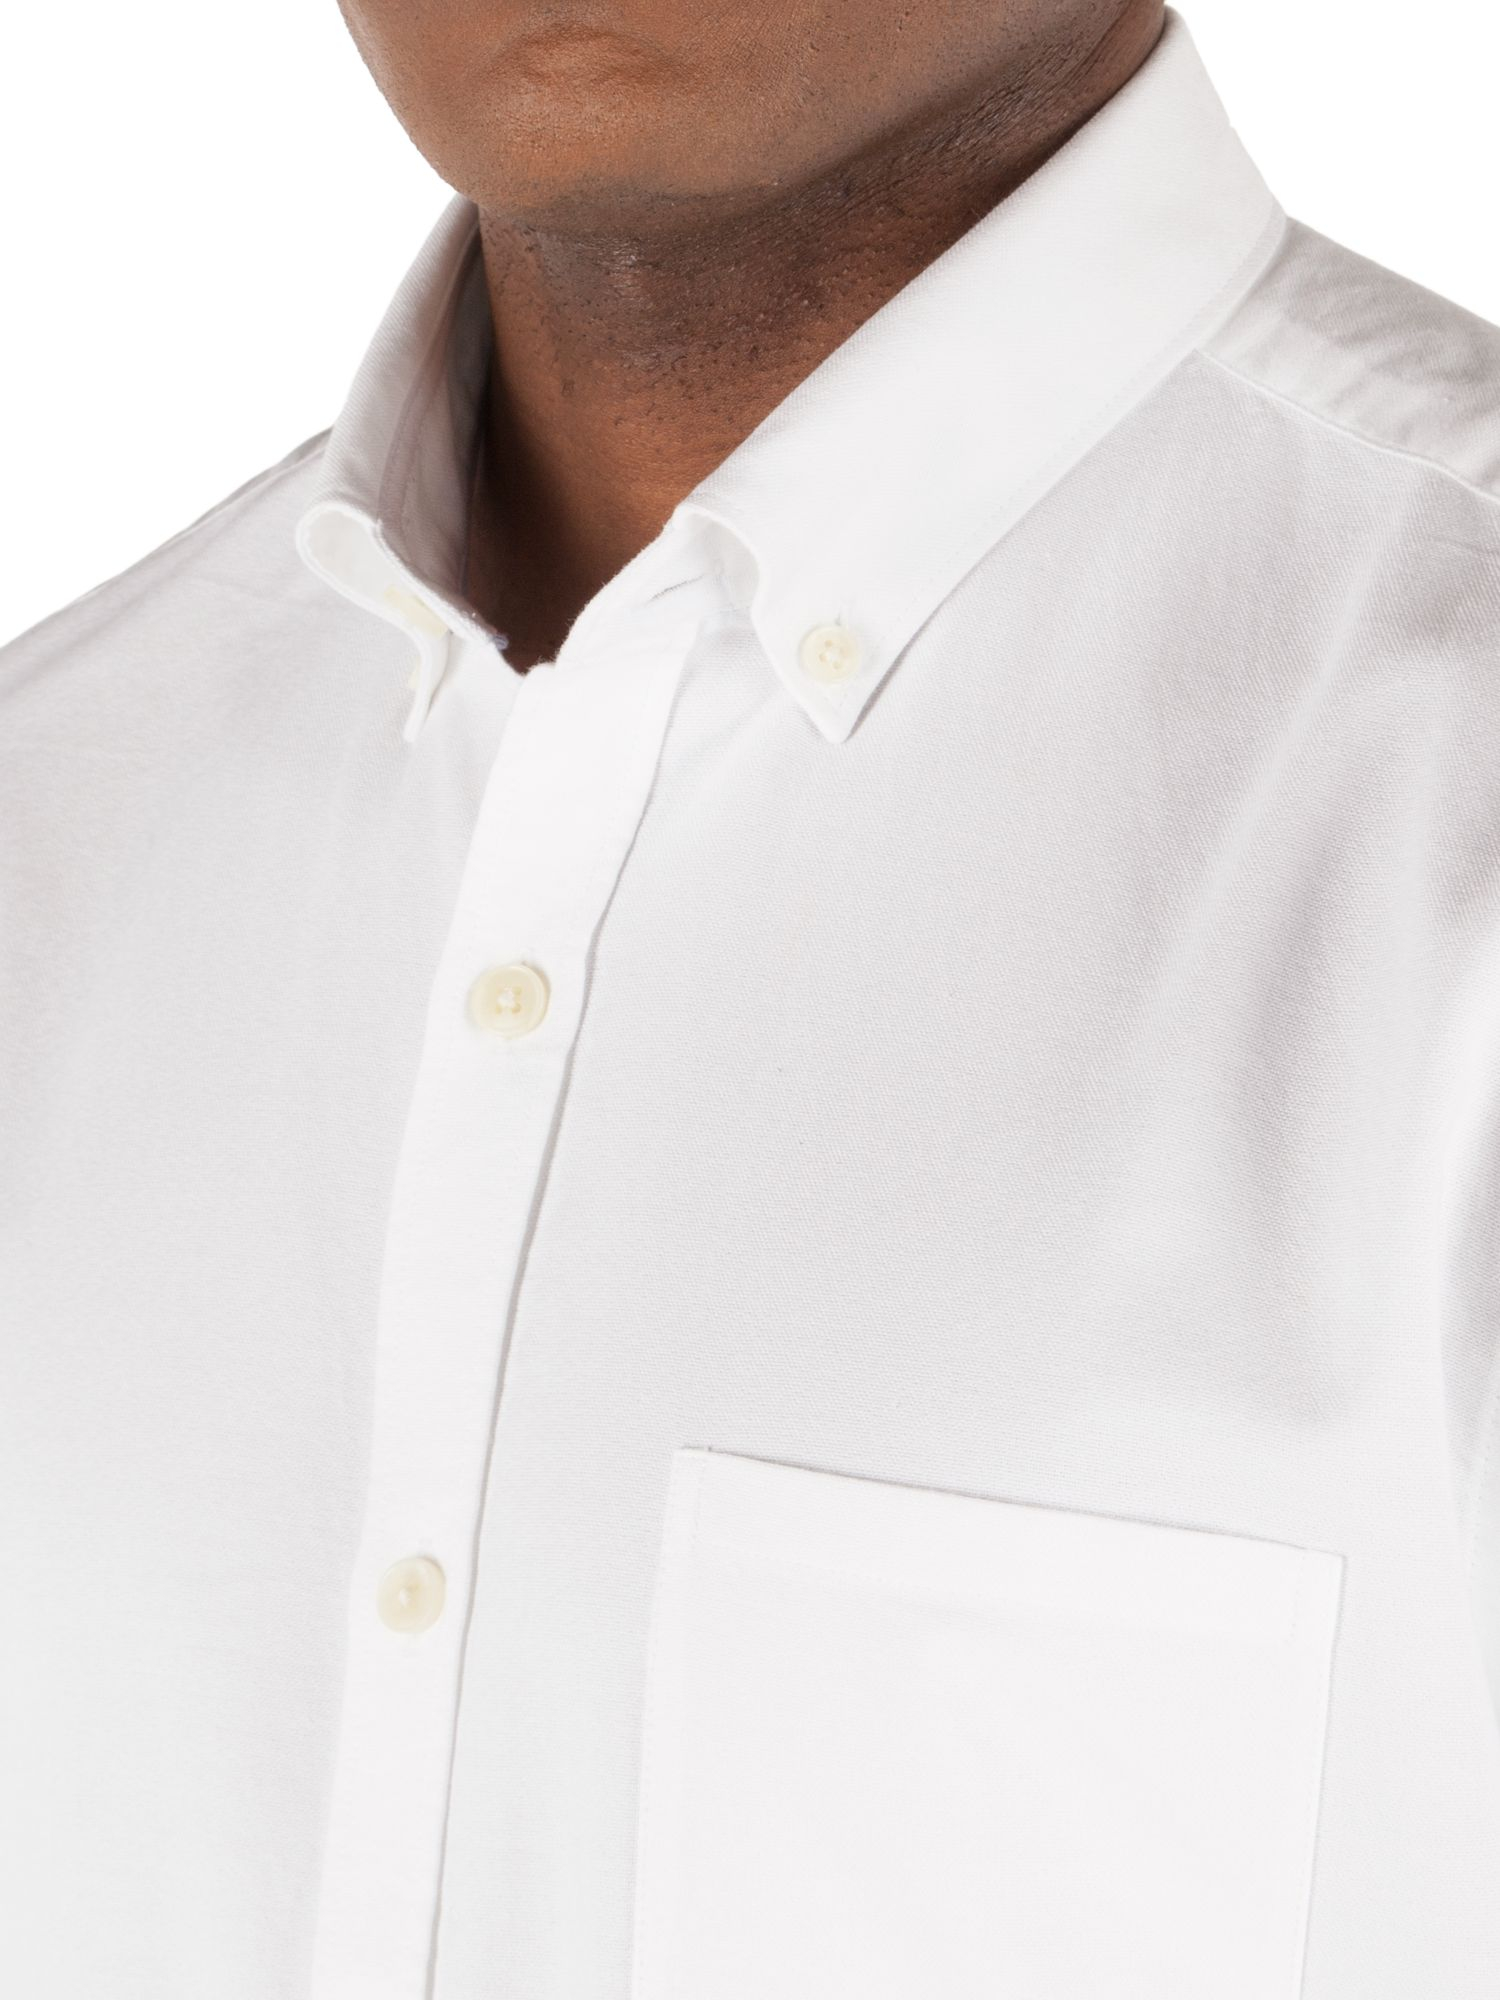 Gibson oxford tailored fit button down shirt in white for for White button down oxford shirt